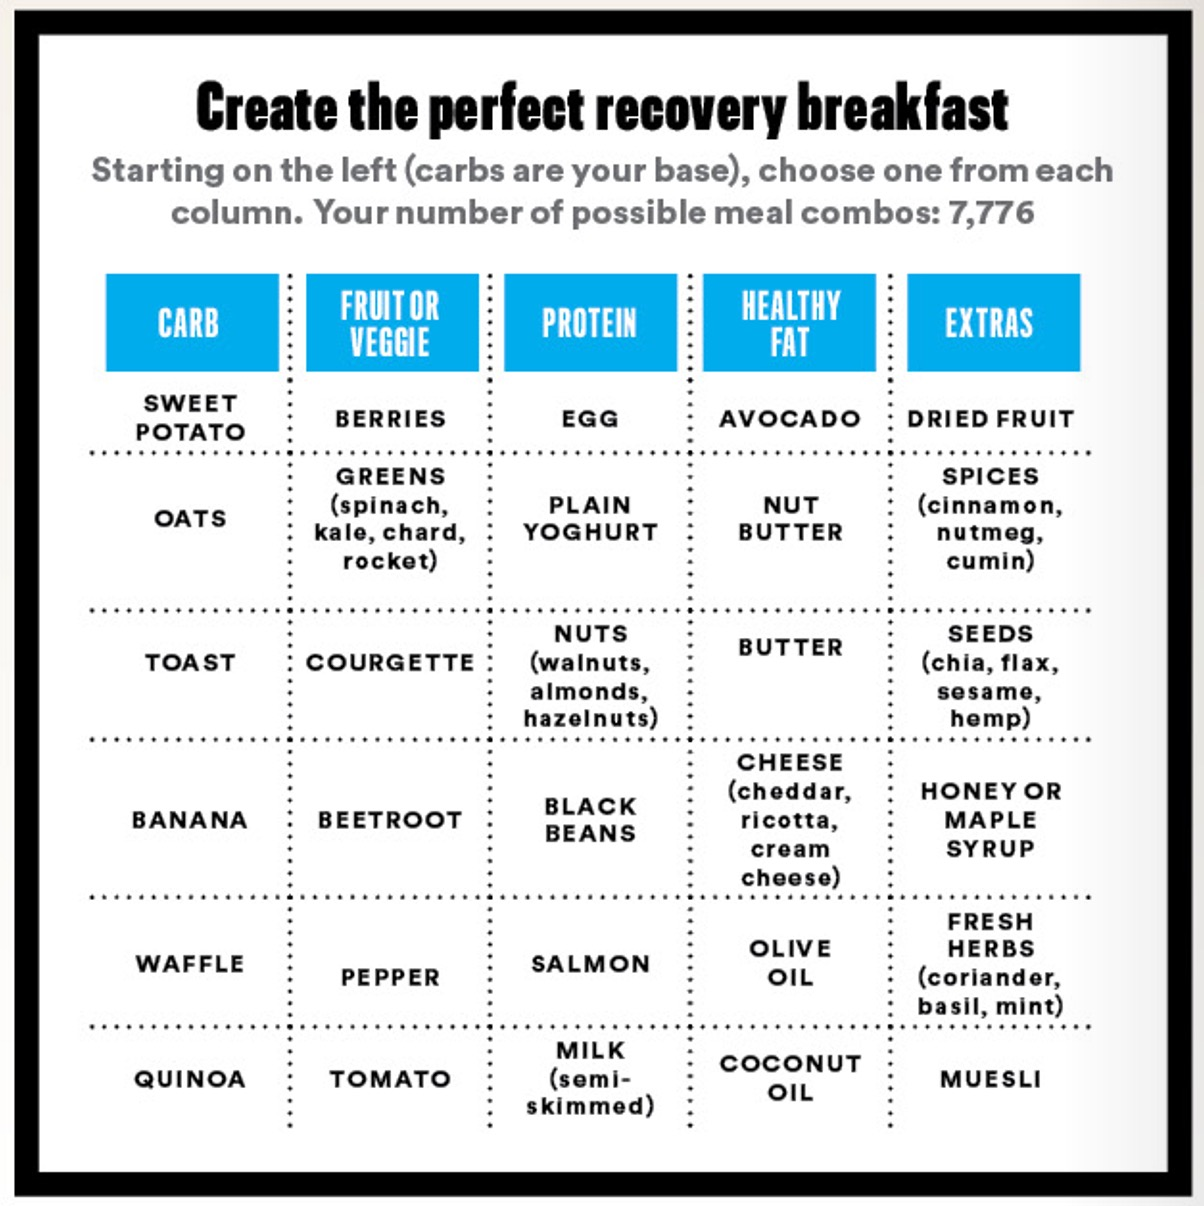 how to create the perfect recovery breakfast